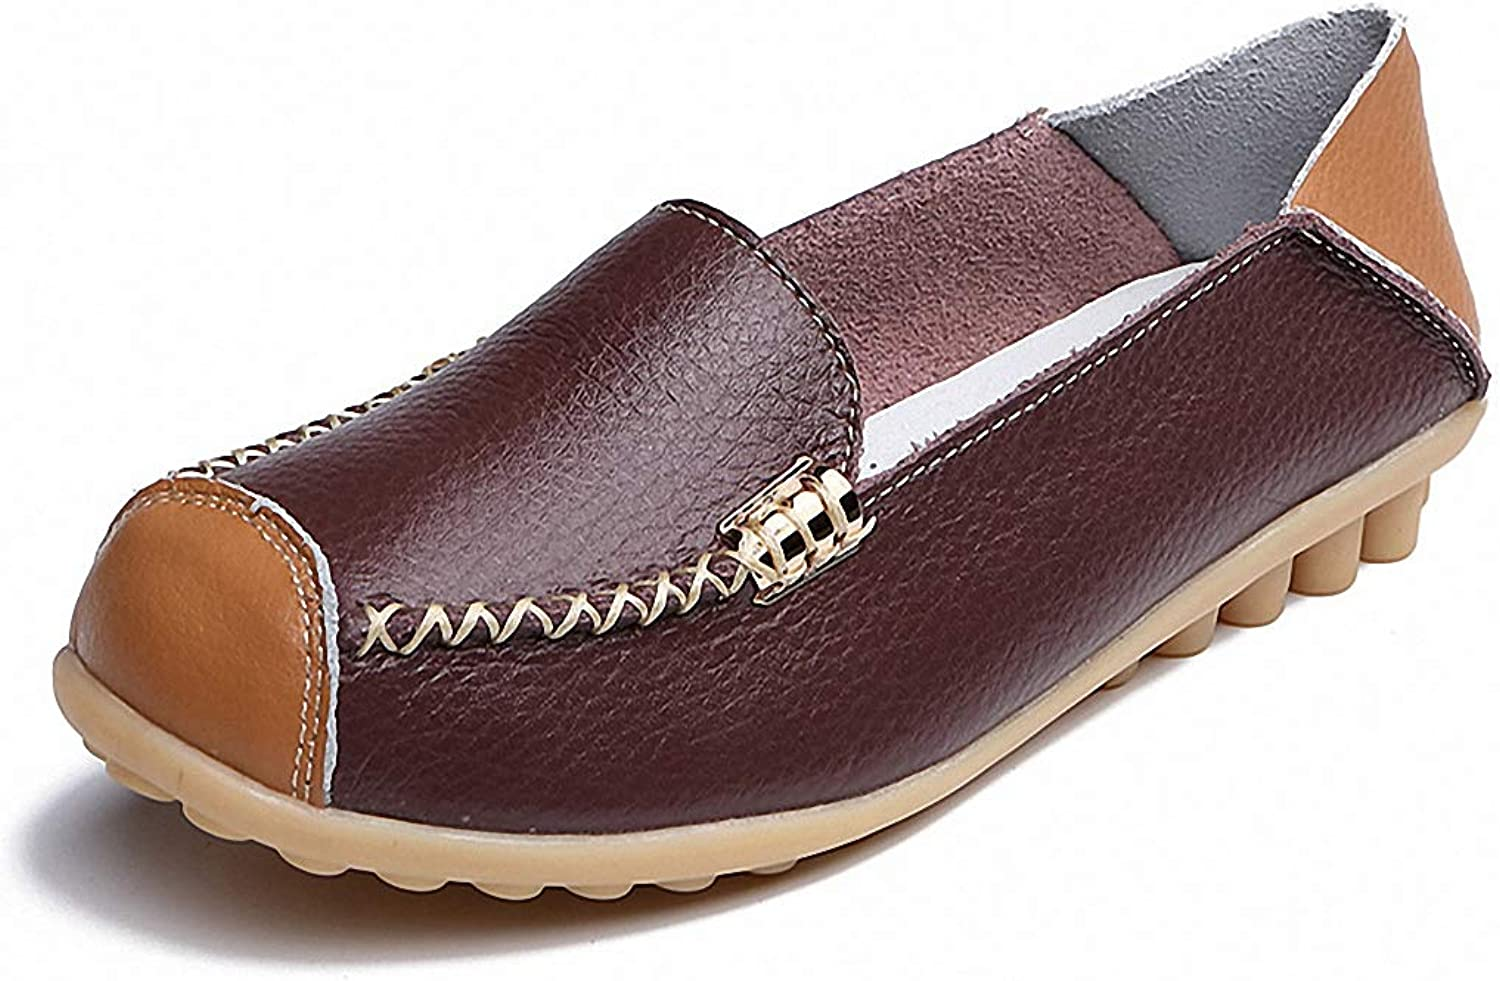 YoCool Women's Slip On Casual shoes Loafer Boat shoes Penny Mocassins 3592